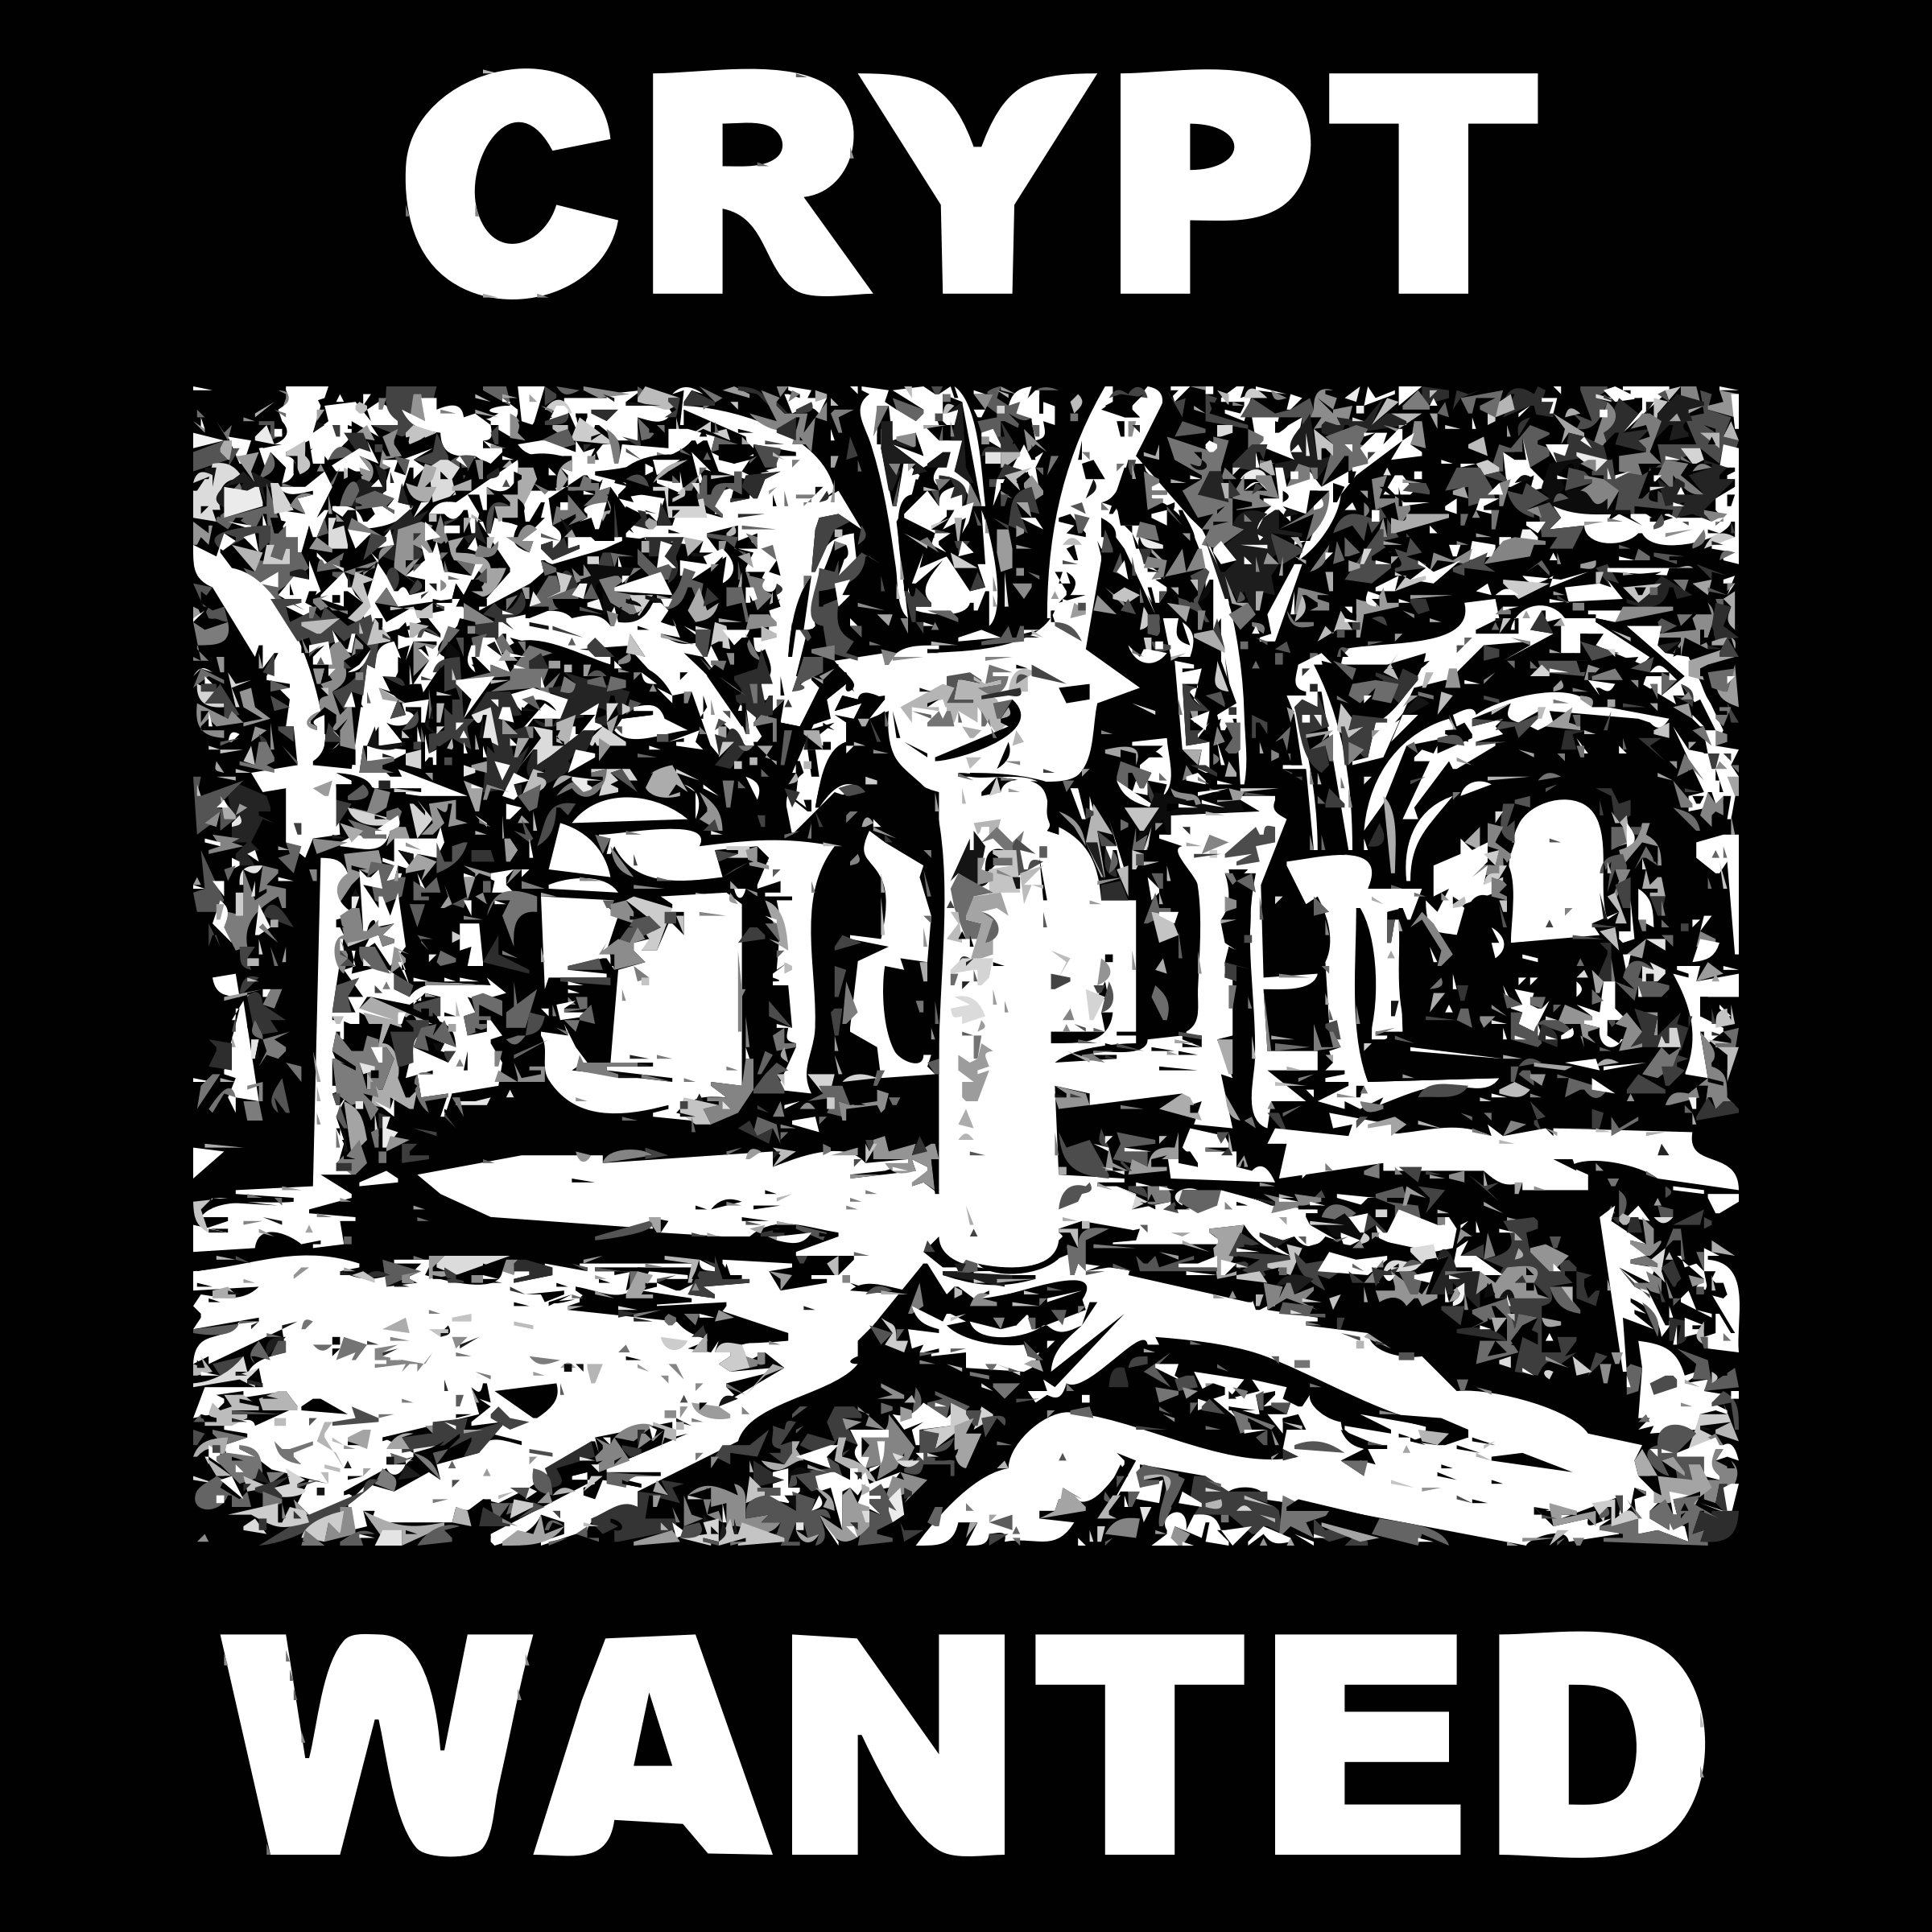 [request] Scenery 7 - CRYPT by speedstar